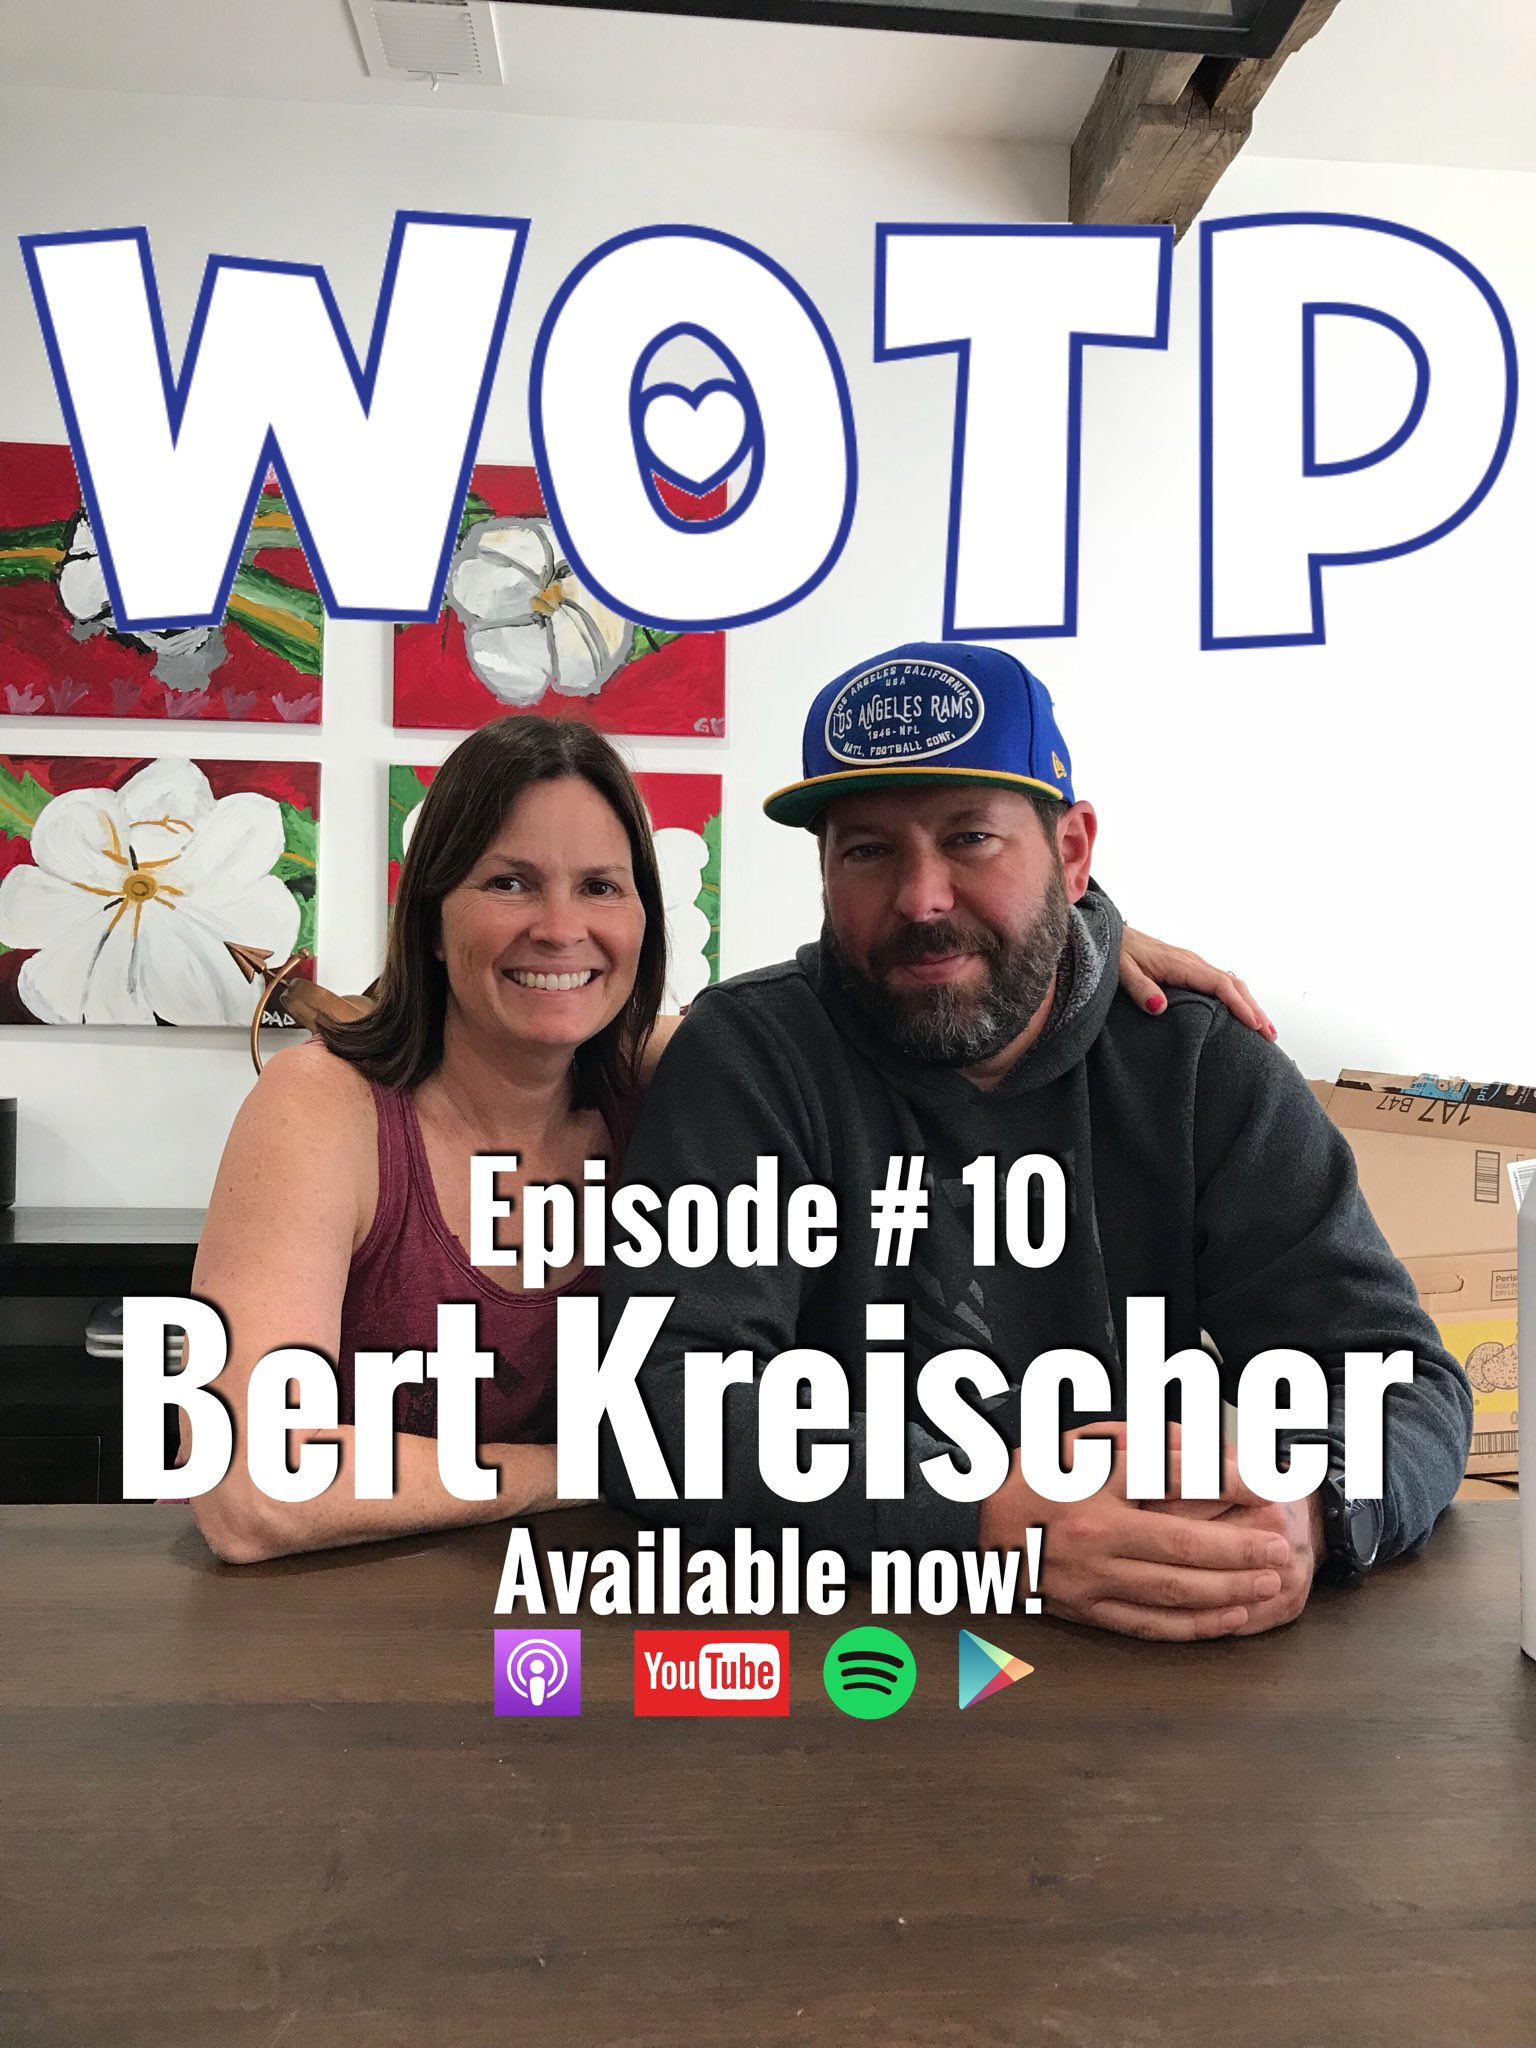 Leeann Kreischer On Twitter Episode 10 With My Hubby Go To Https T Co S8ug9zmm2a For Links To You Tube Itunes And Google Play Or Find Me On Laughable Enjoy Https T Co Txbjvpqwn4 #leeannsomers #leeannwomack #leeannmaxwell #kreischer #leeann+tweeden #kreischermansion. leeann kreischer on twitter episode